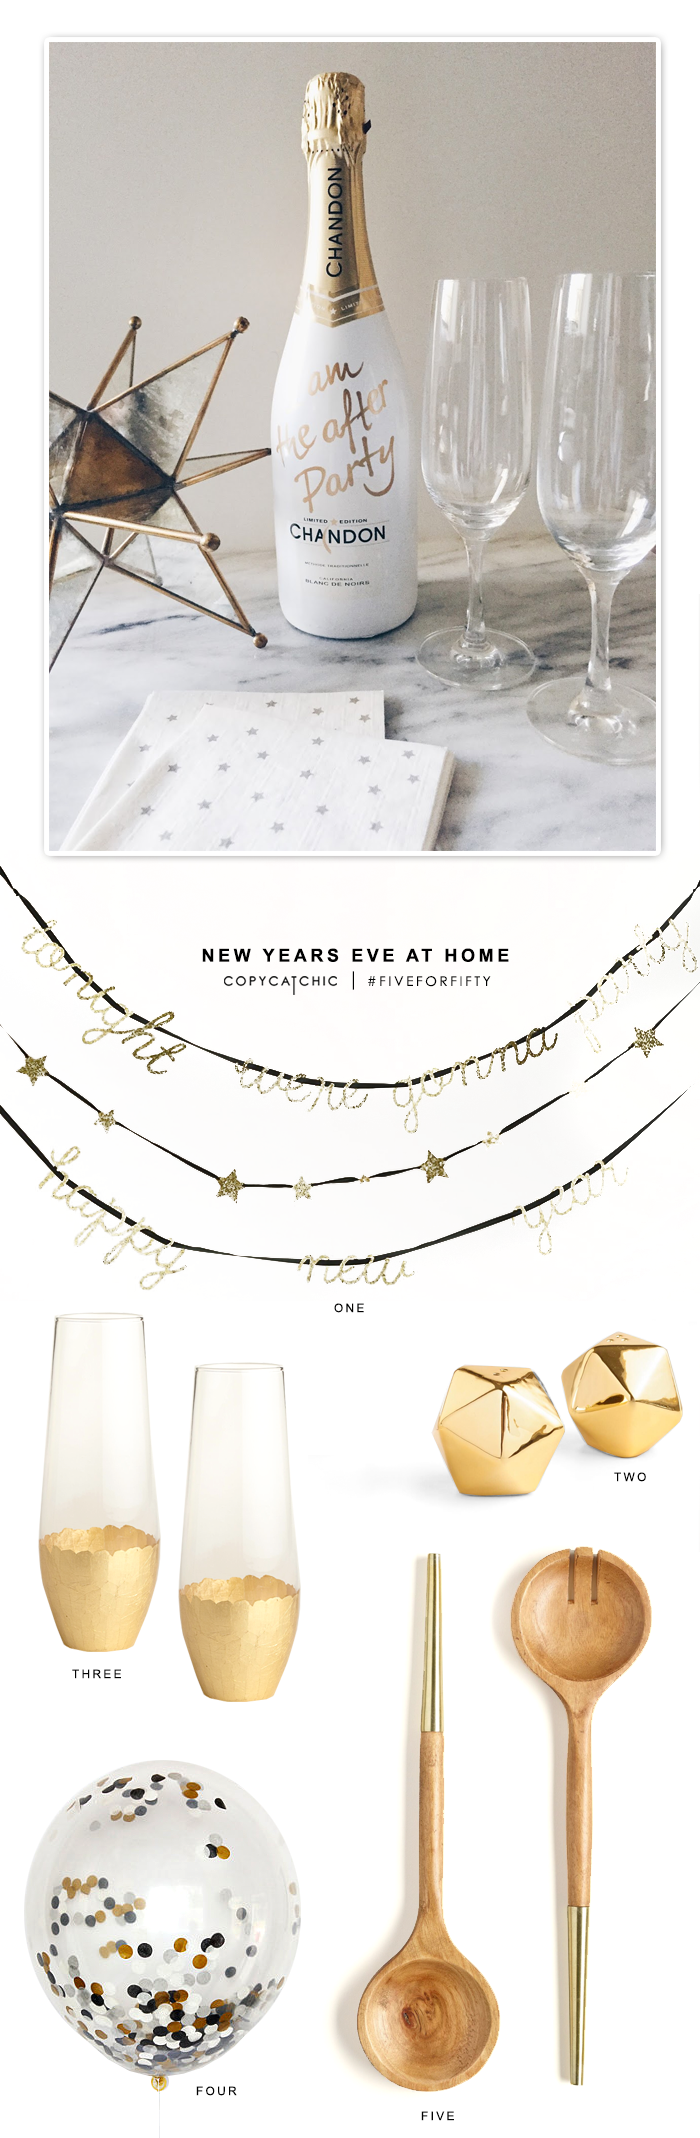 A cozy and fun New Year's Eve at home | Copy Cat Chic #FiveforFifty finds from World Market